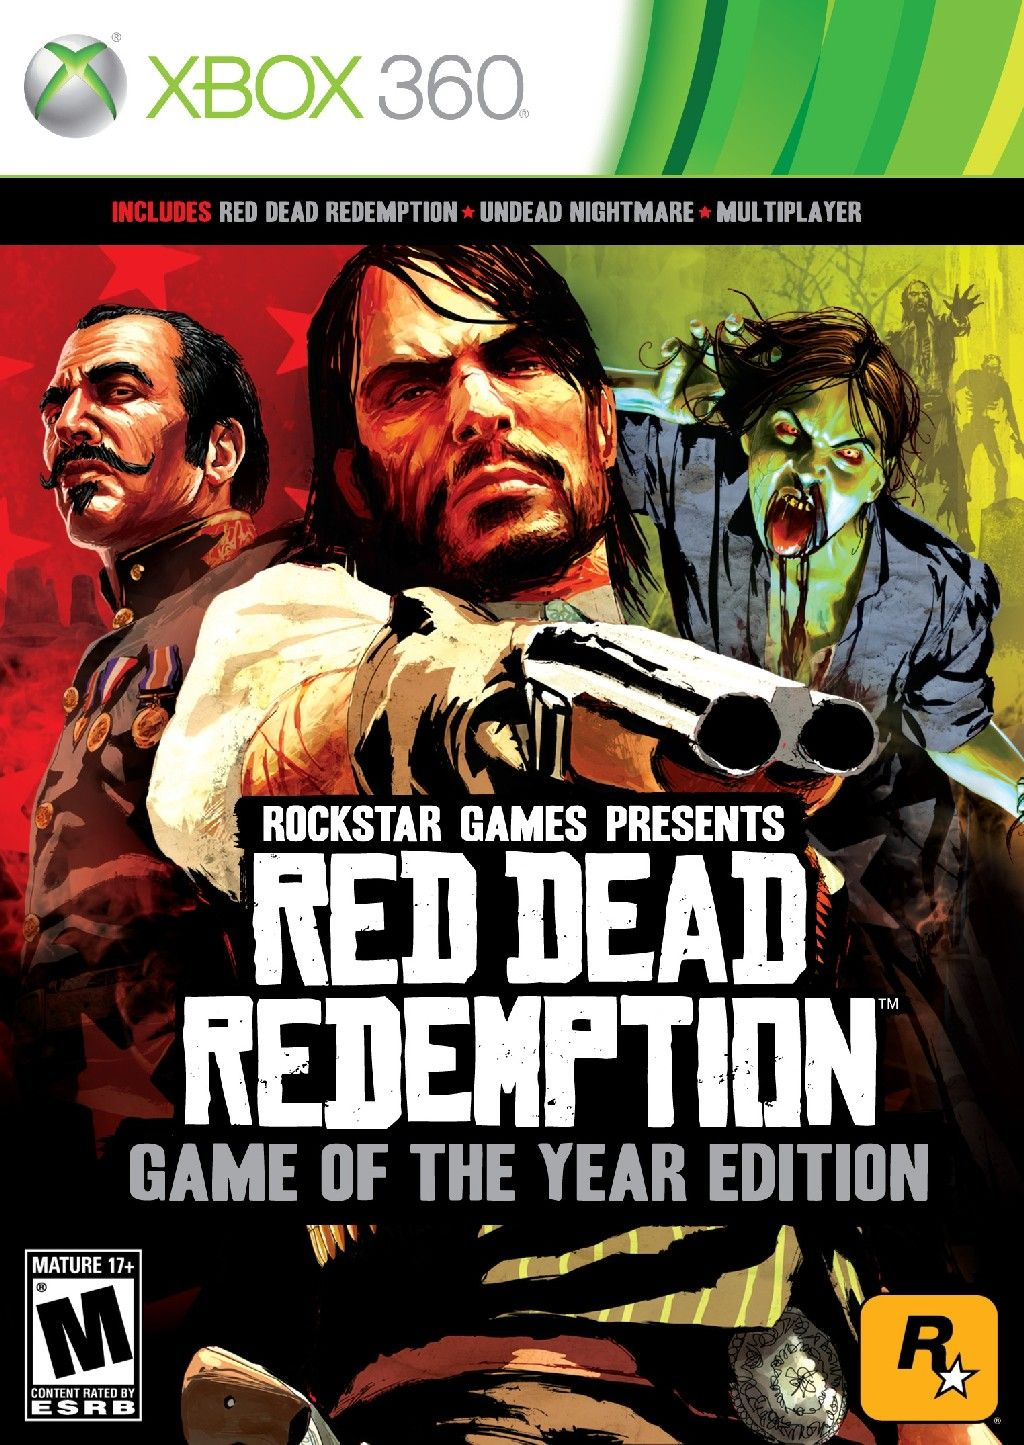 Red Dead Redemption Loved This Game Loved The Story And The Action Playing Undea Red Dead Redemption Ps3 Red Dead Redemption Game Red Dead Redemption Xbox